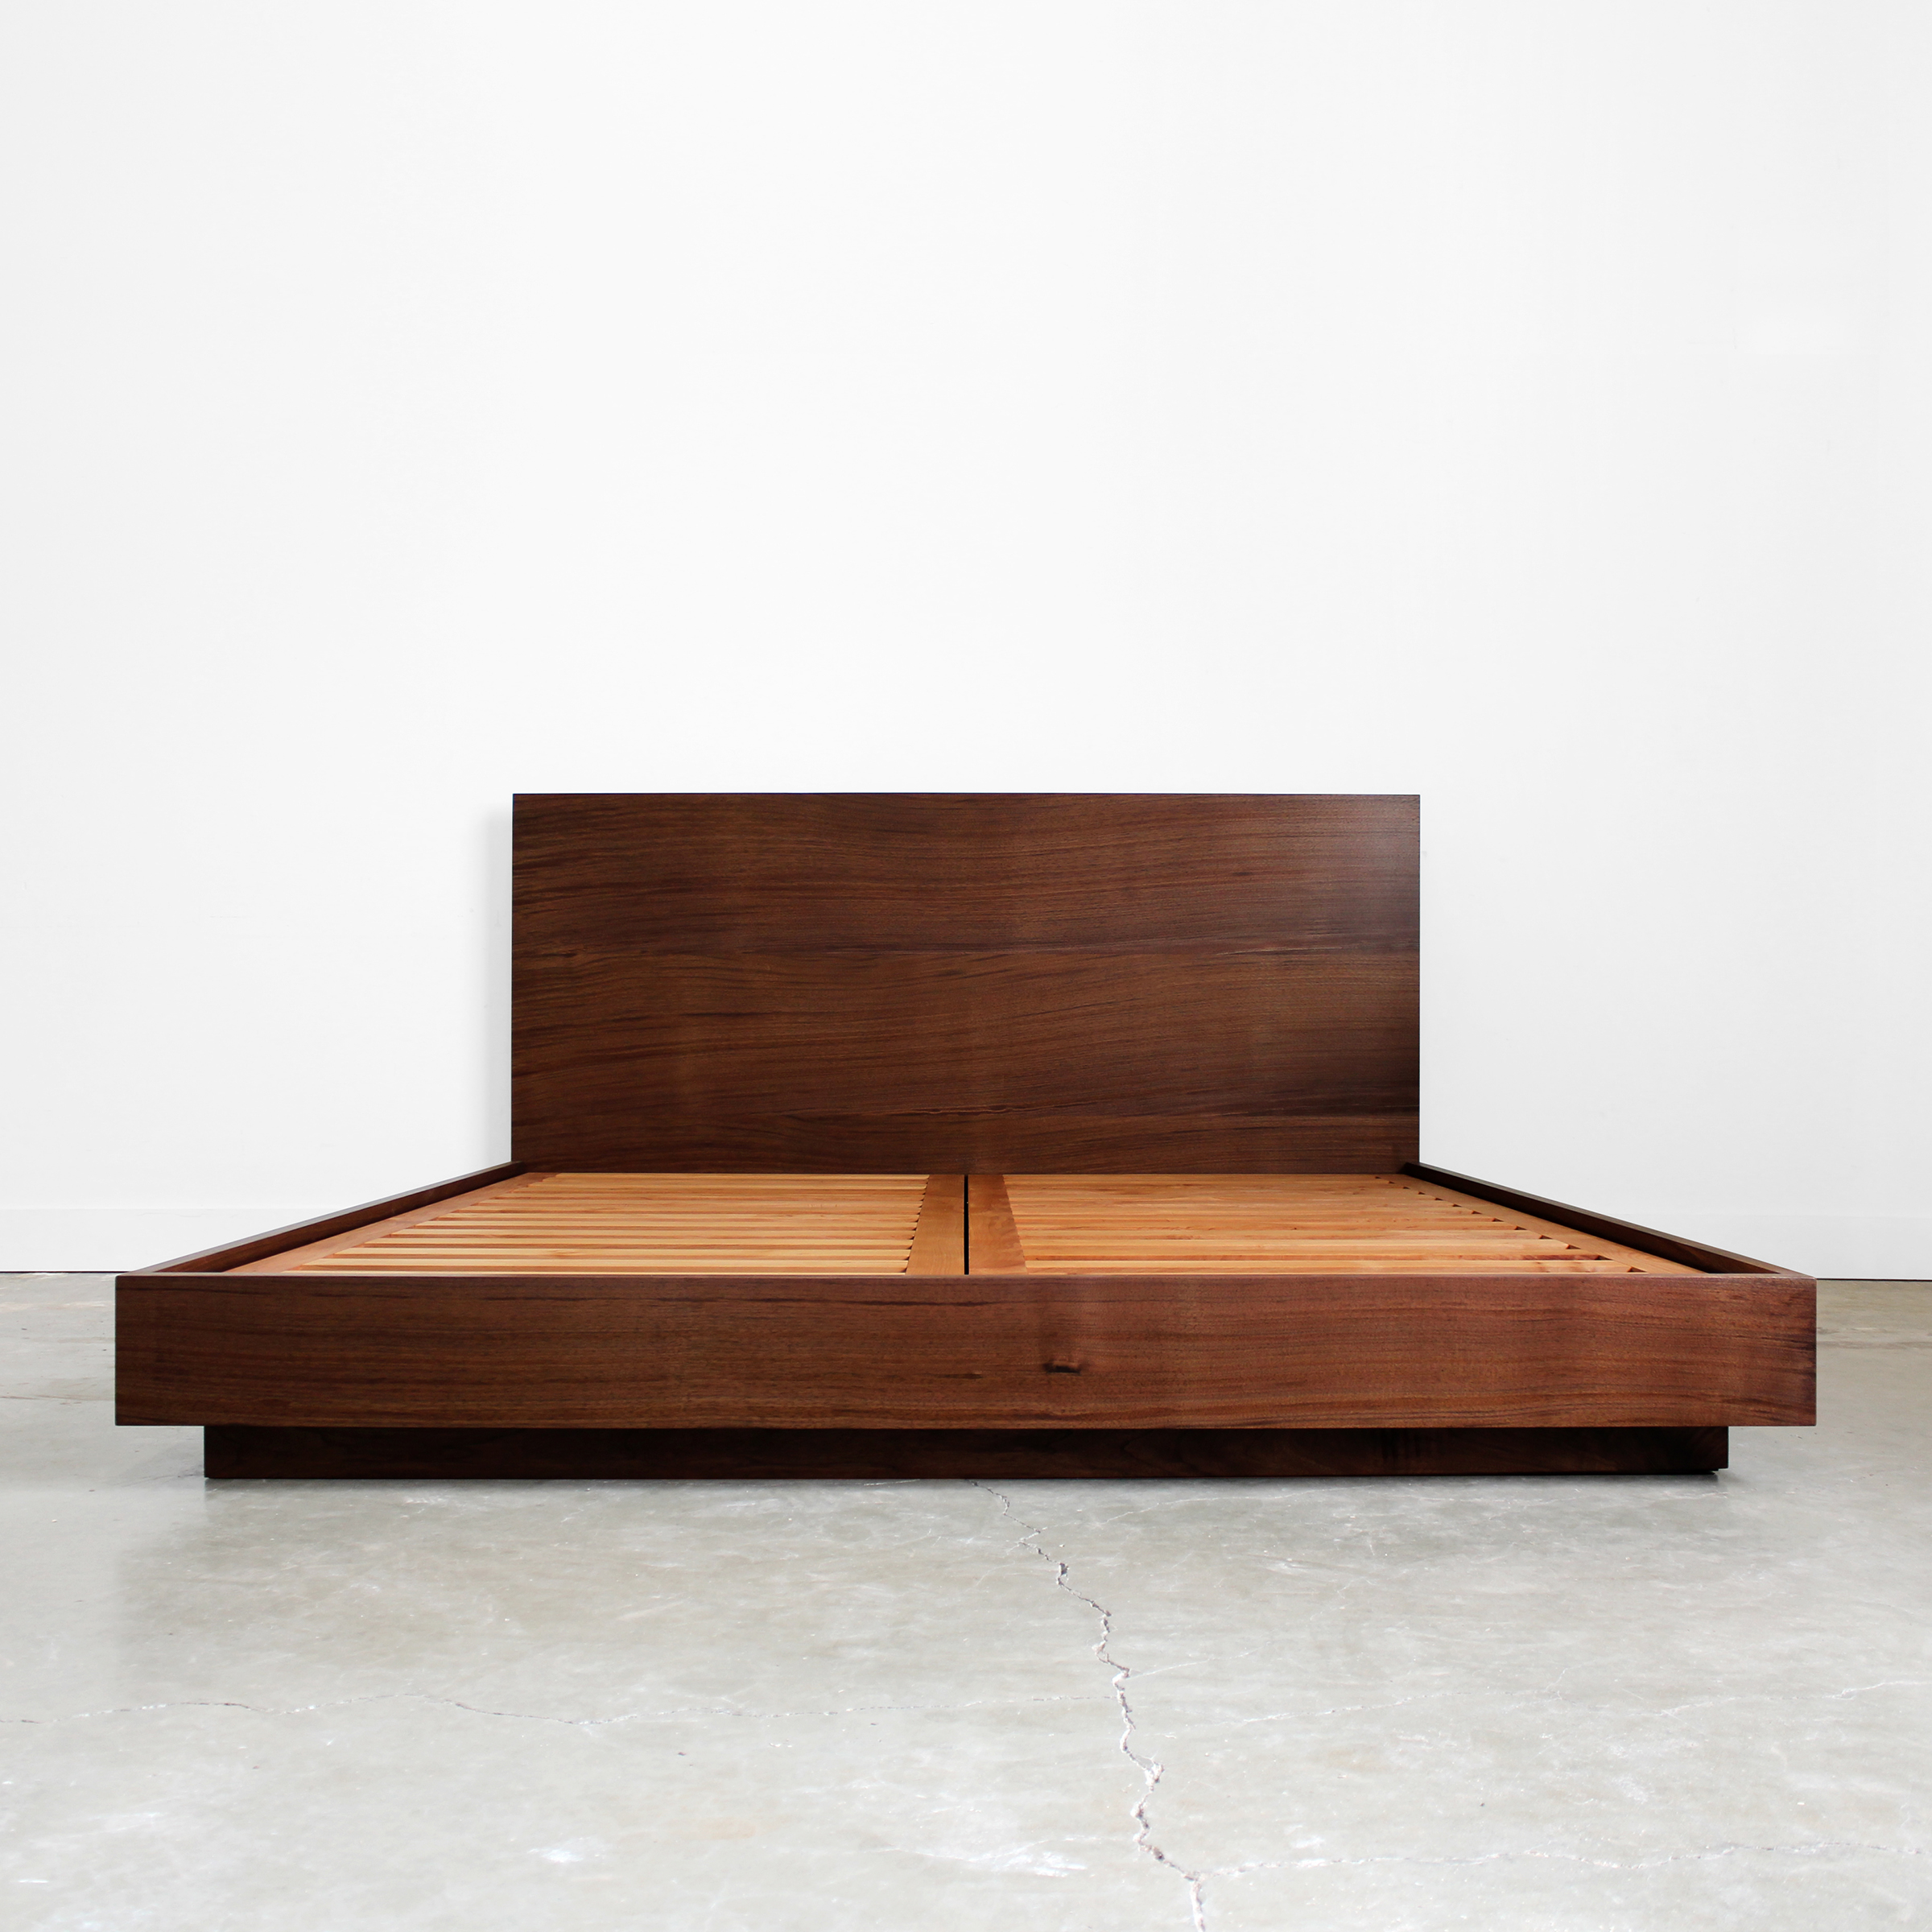 New! Hanko Plinth Bed